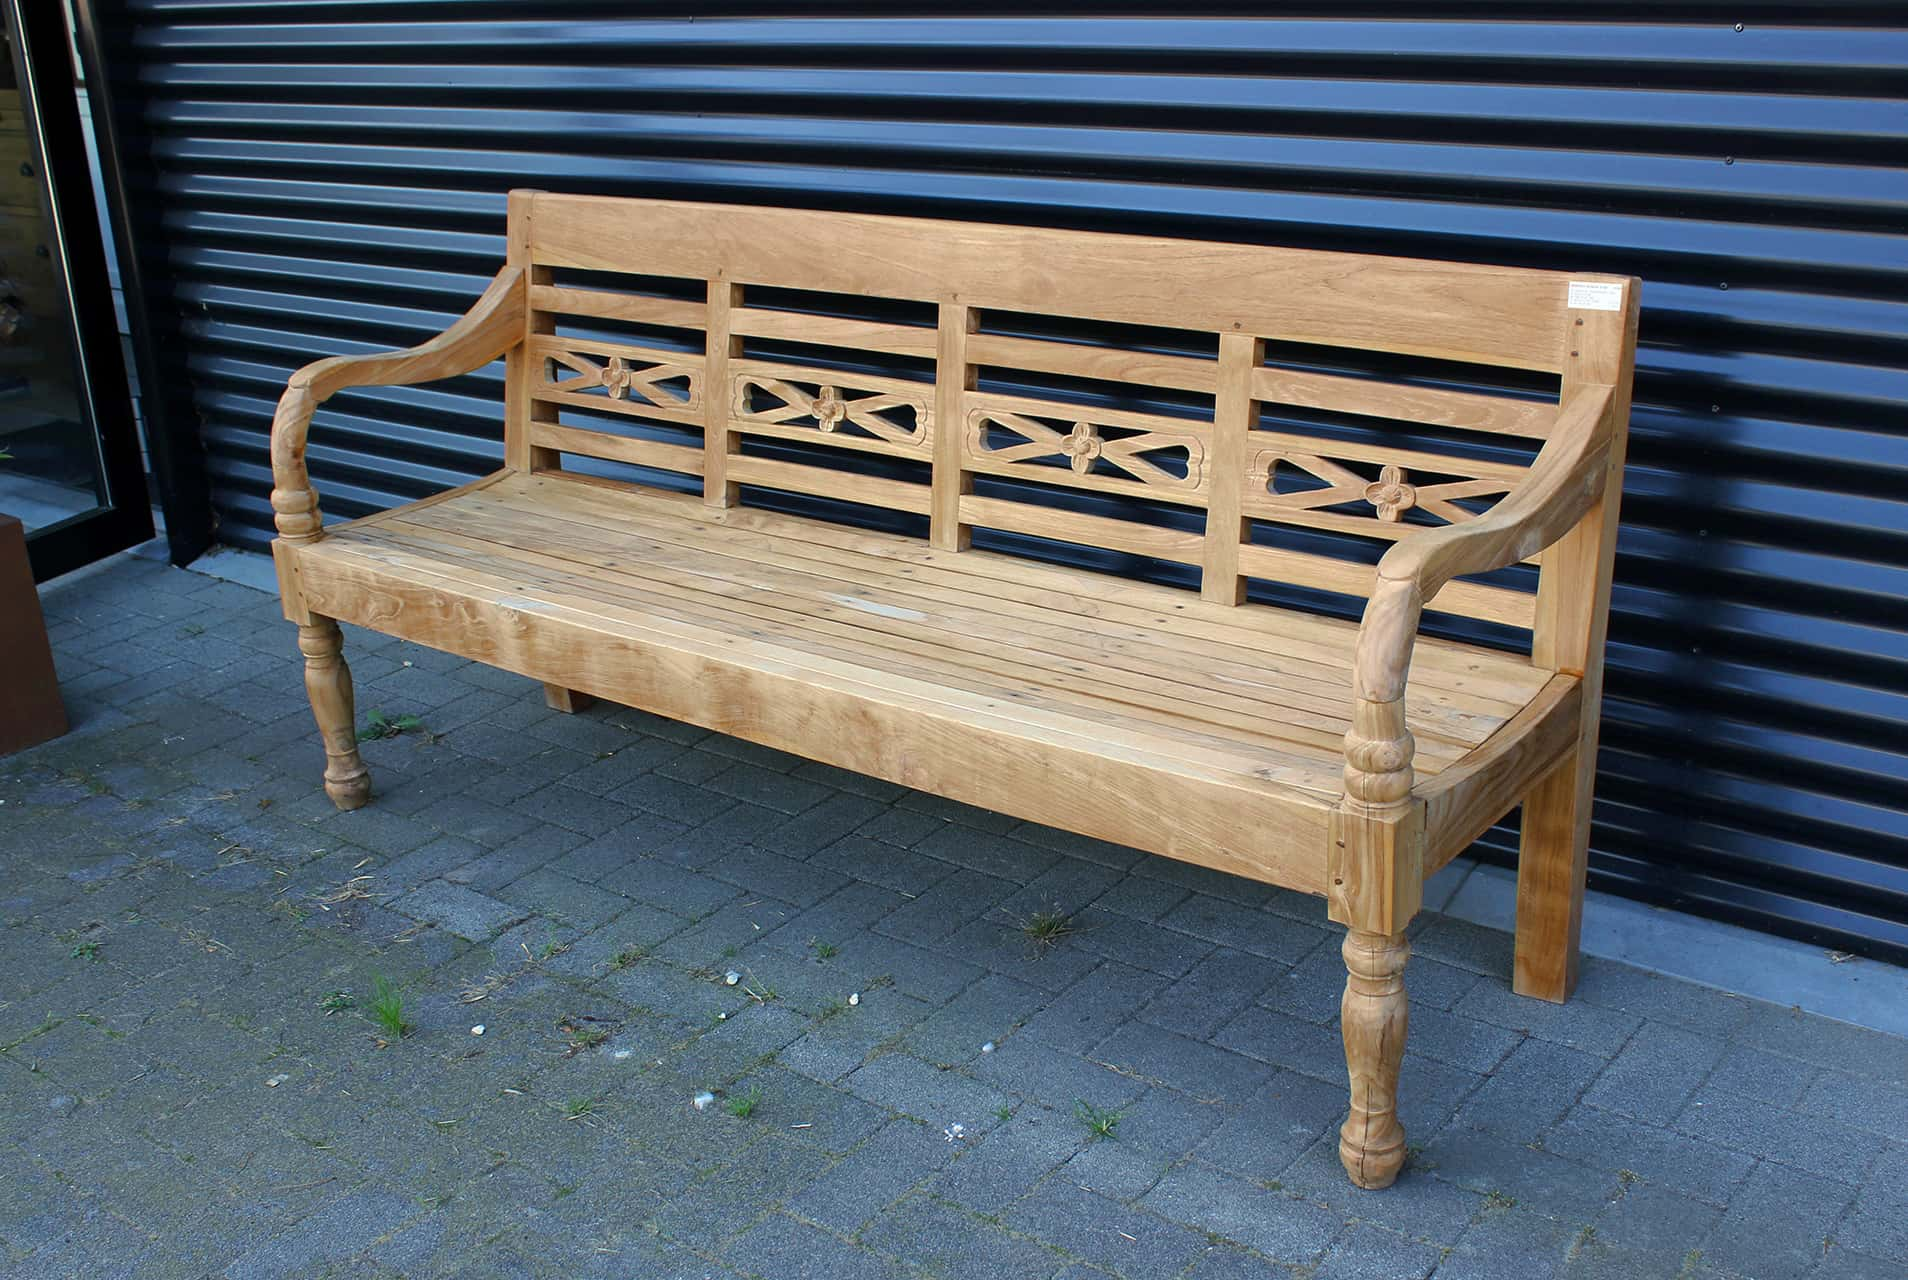 Bangku Bunga O190 | teak garden bench from Indonesia in modern smooth untreated teak. Teak station bench in different sizes at TEAK2.